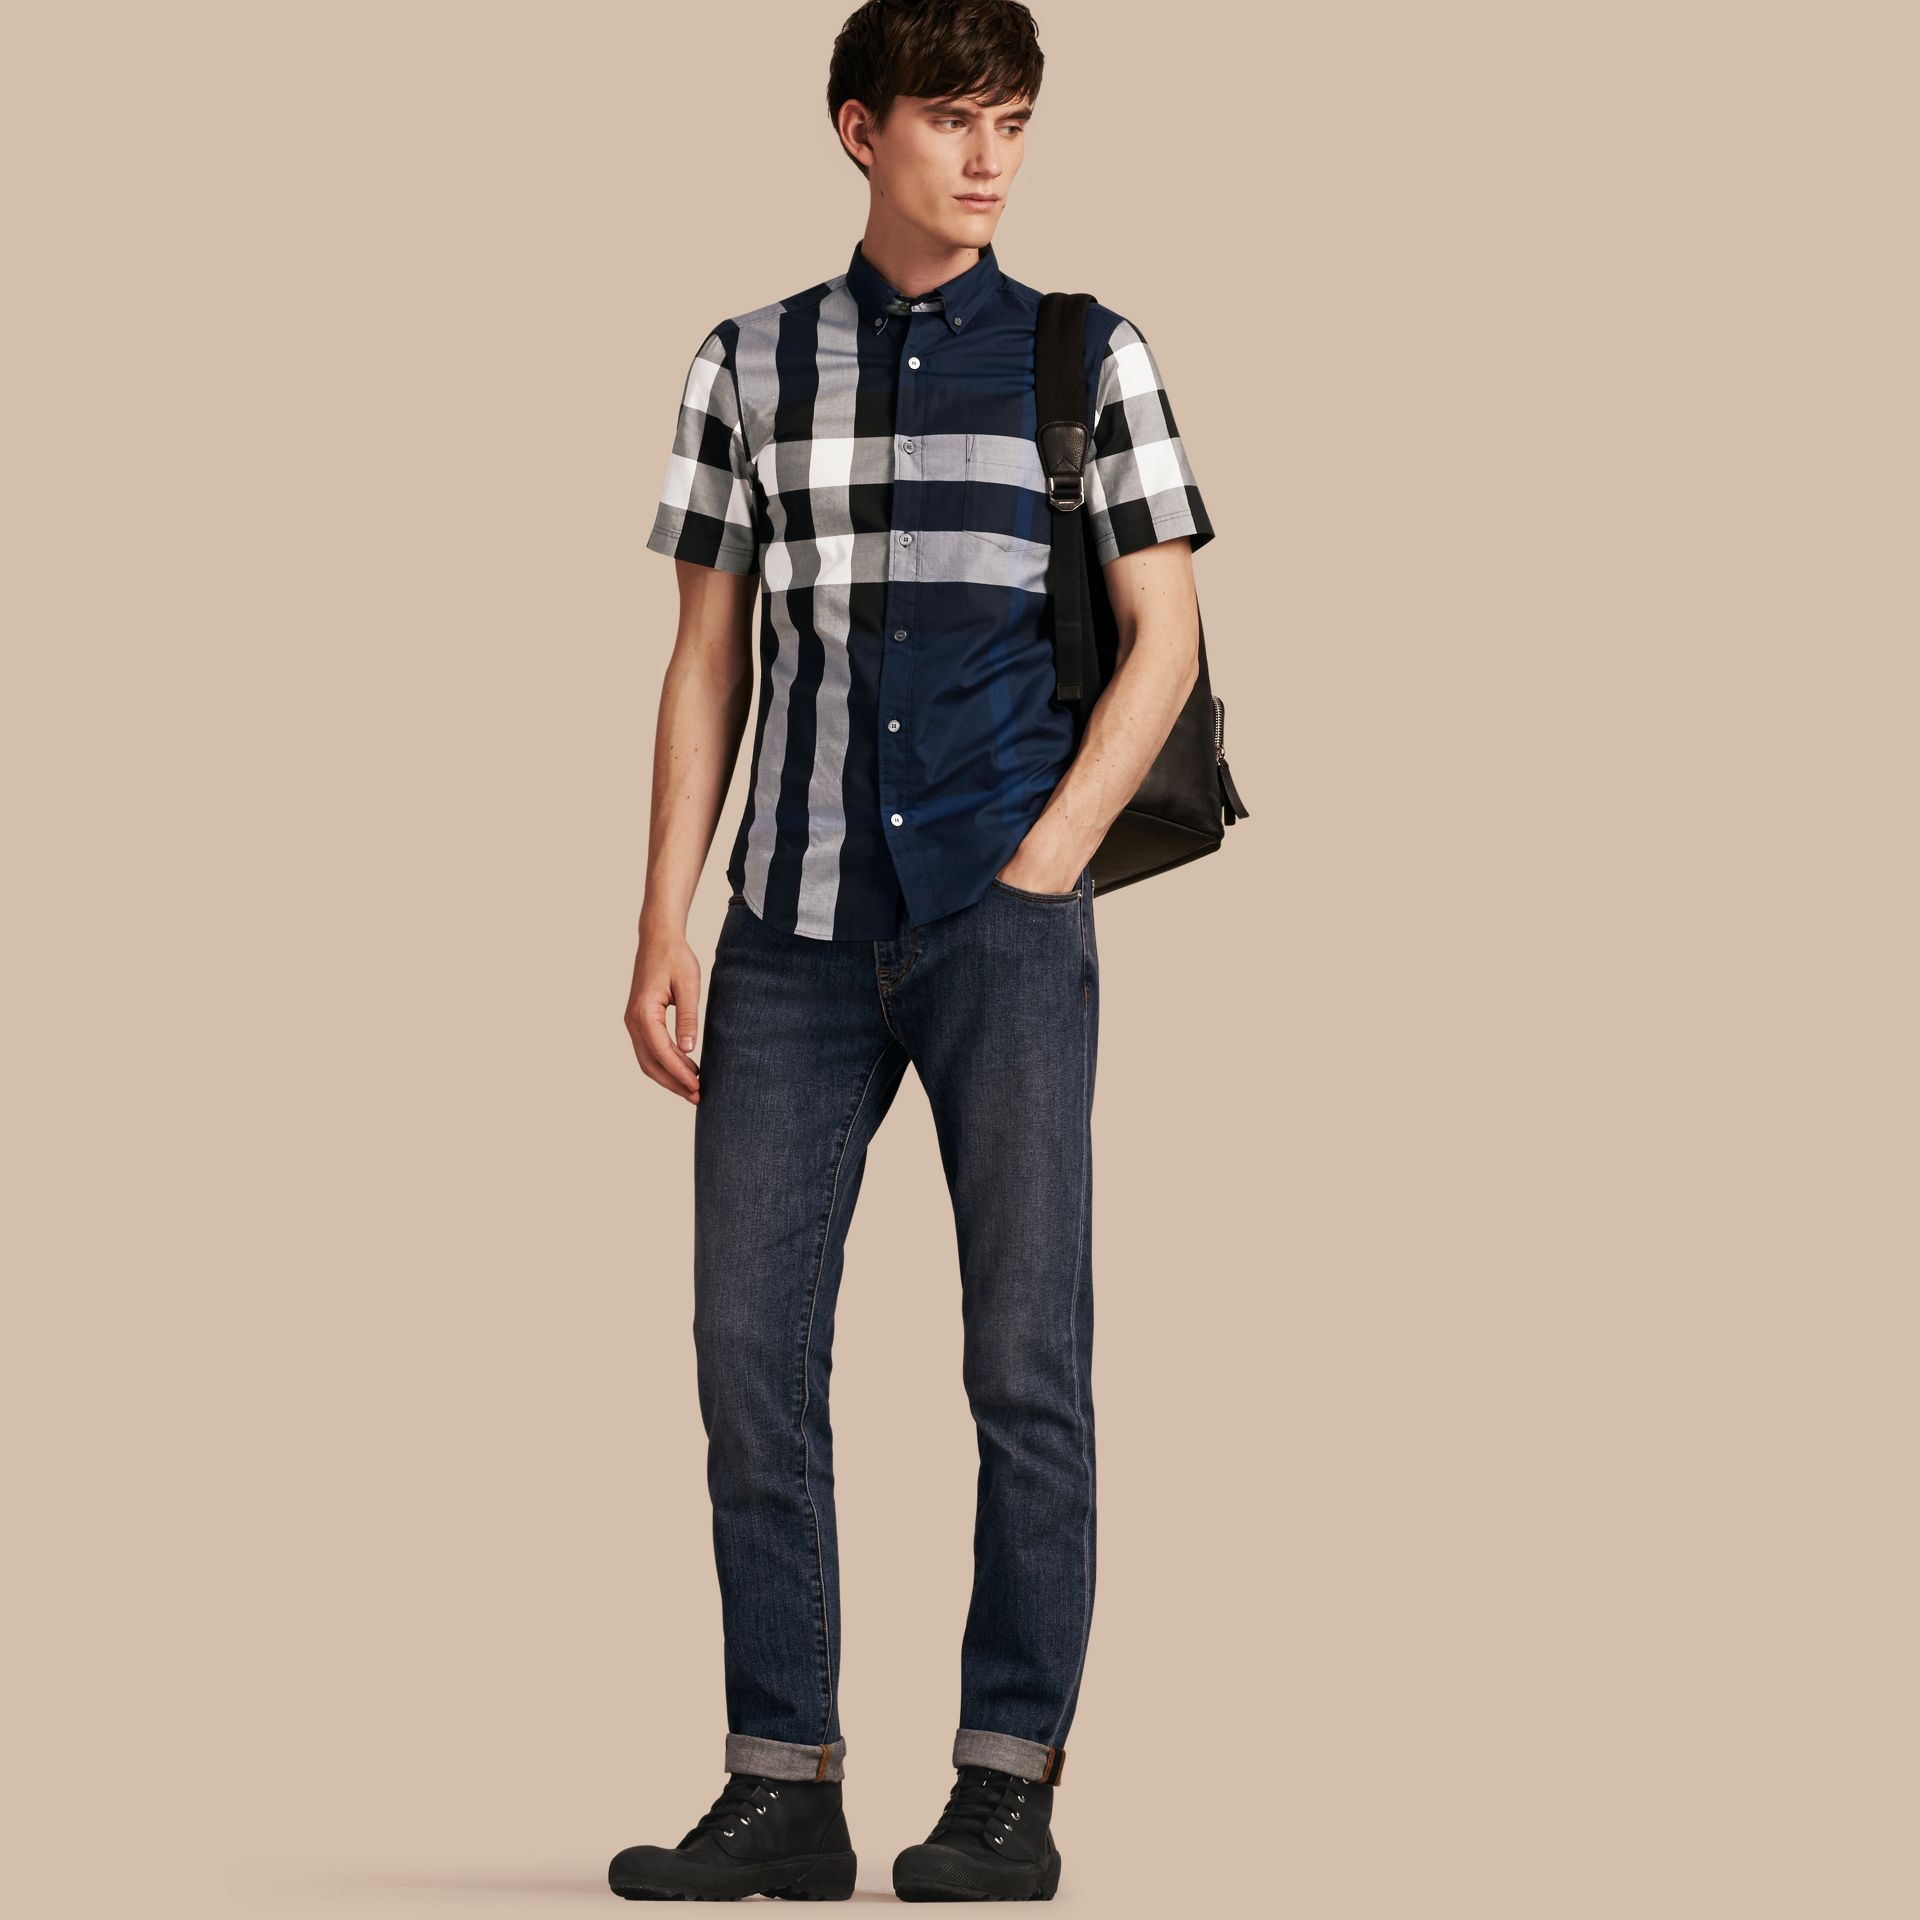 Indigo blue Short-sleeved Check Cotton Shirt Indigo Blue - gallery image 1